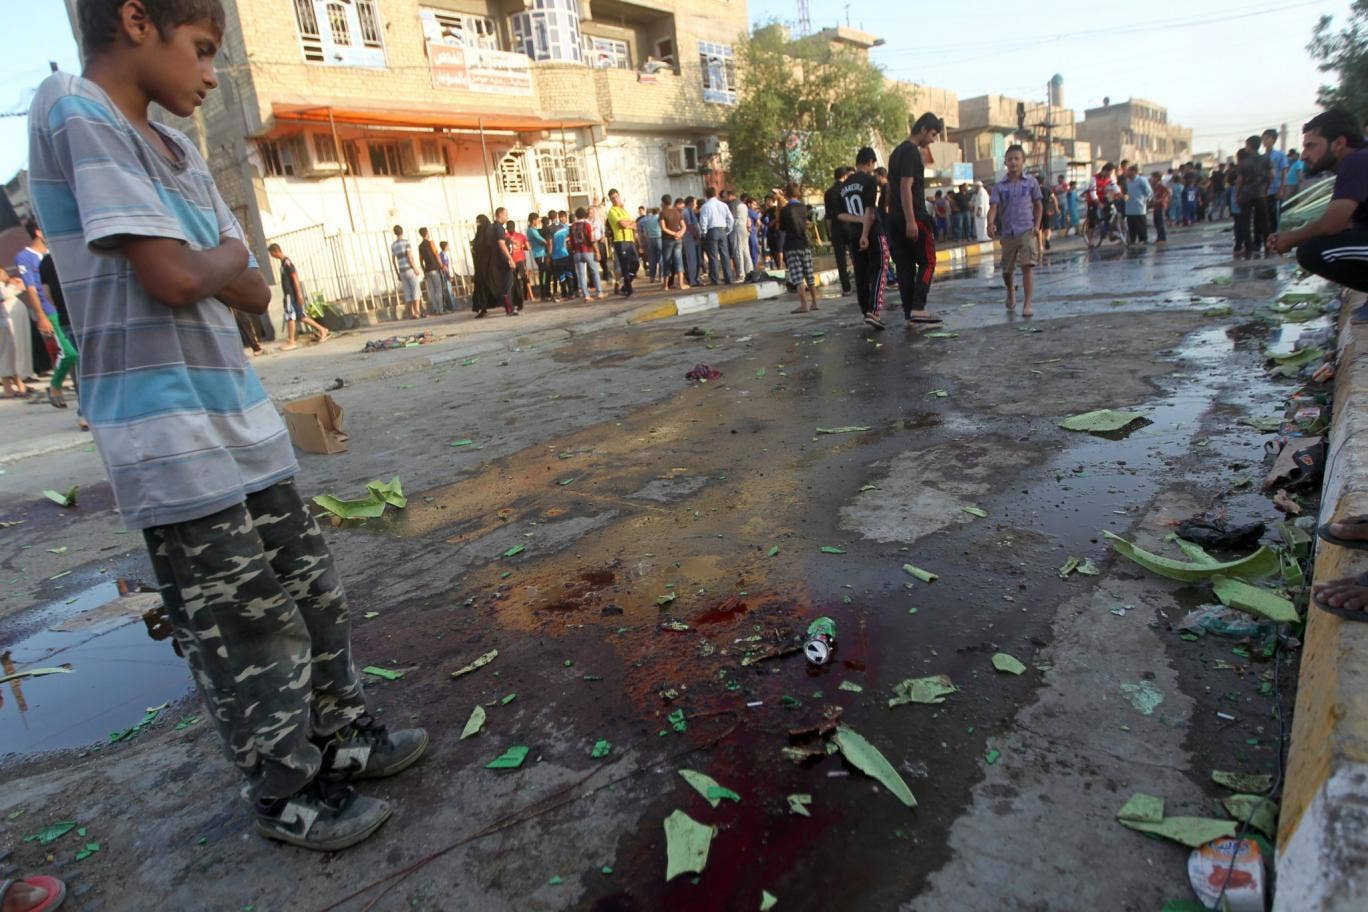 The bomb killed 12 and injure 29